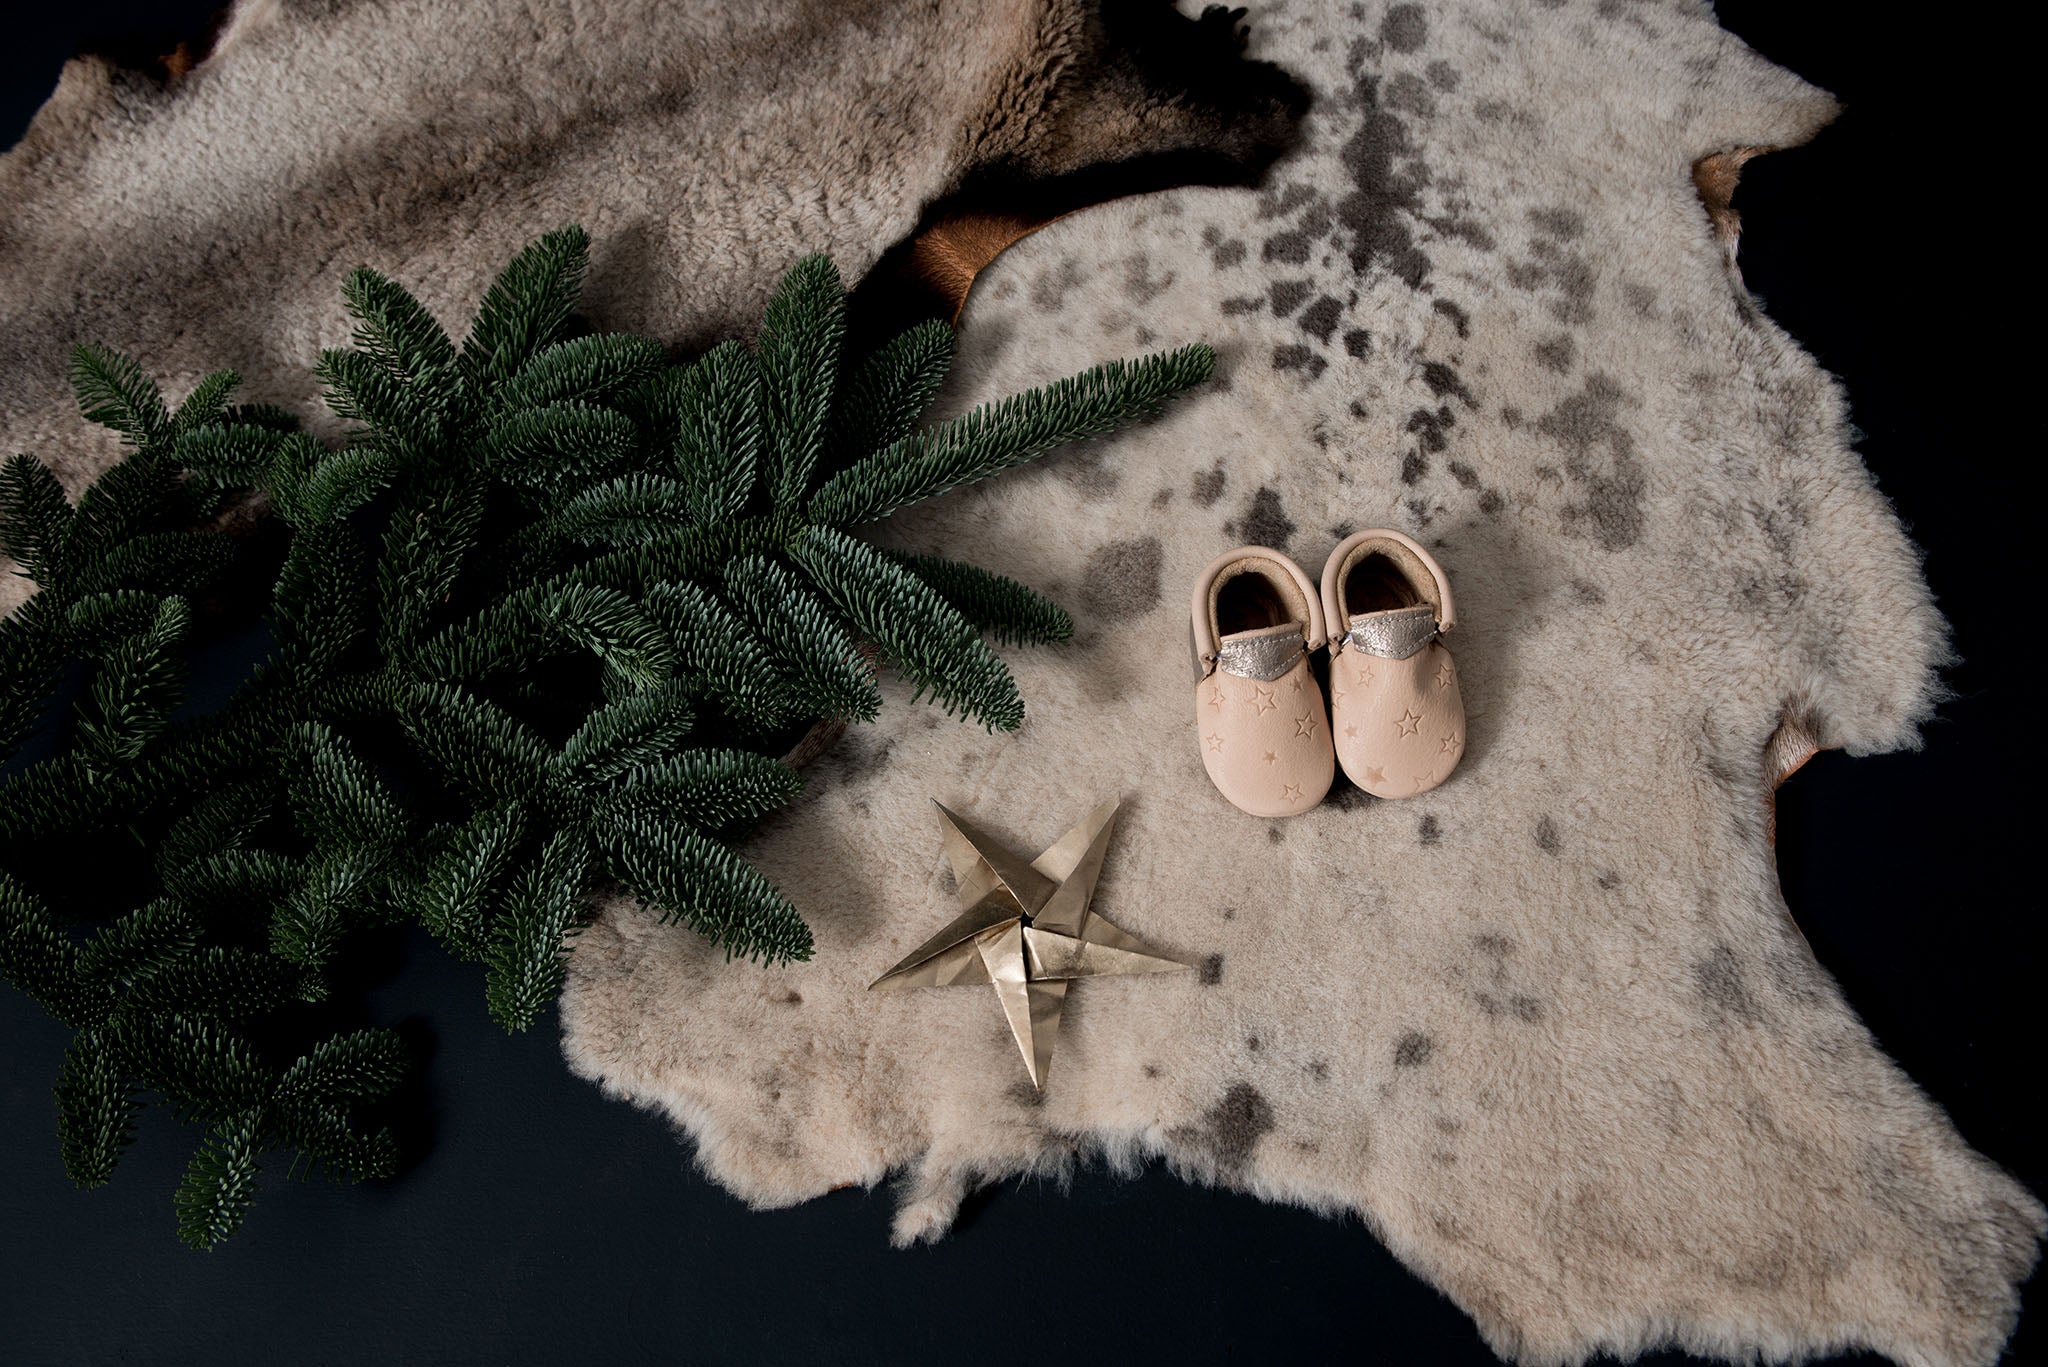 Cute festive start embossed christmas baby shoes. Exclusives handmade eco leather baby shoes by Amy & Ivor for Cissywears at Liberty London.